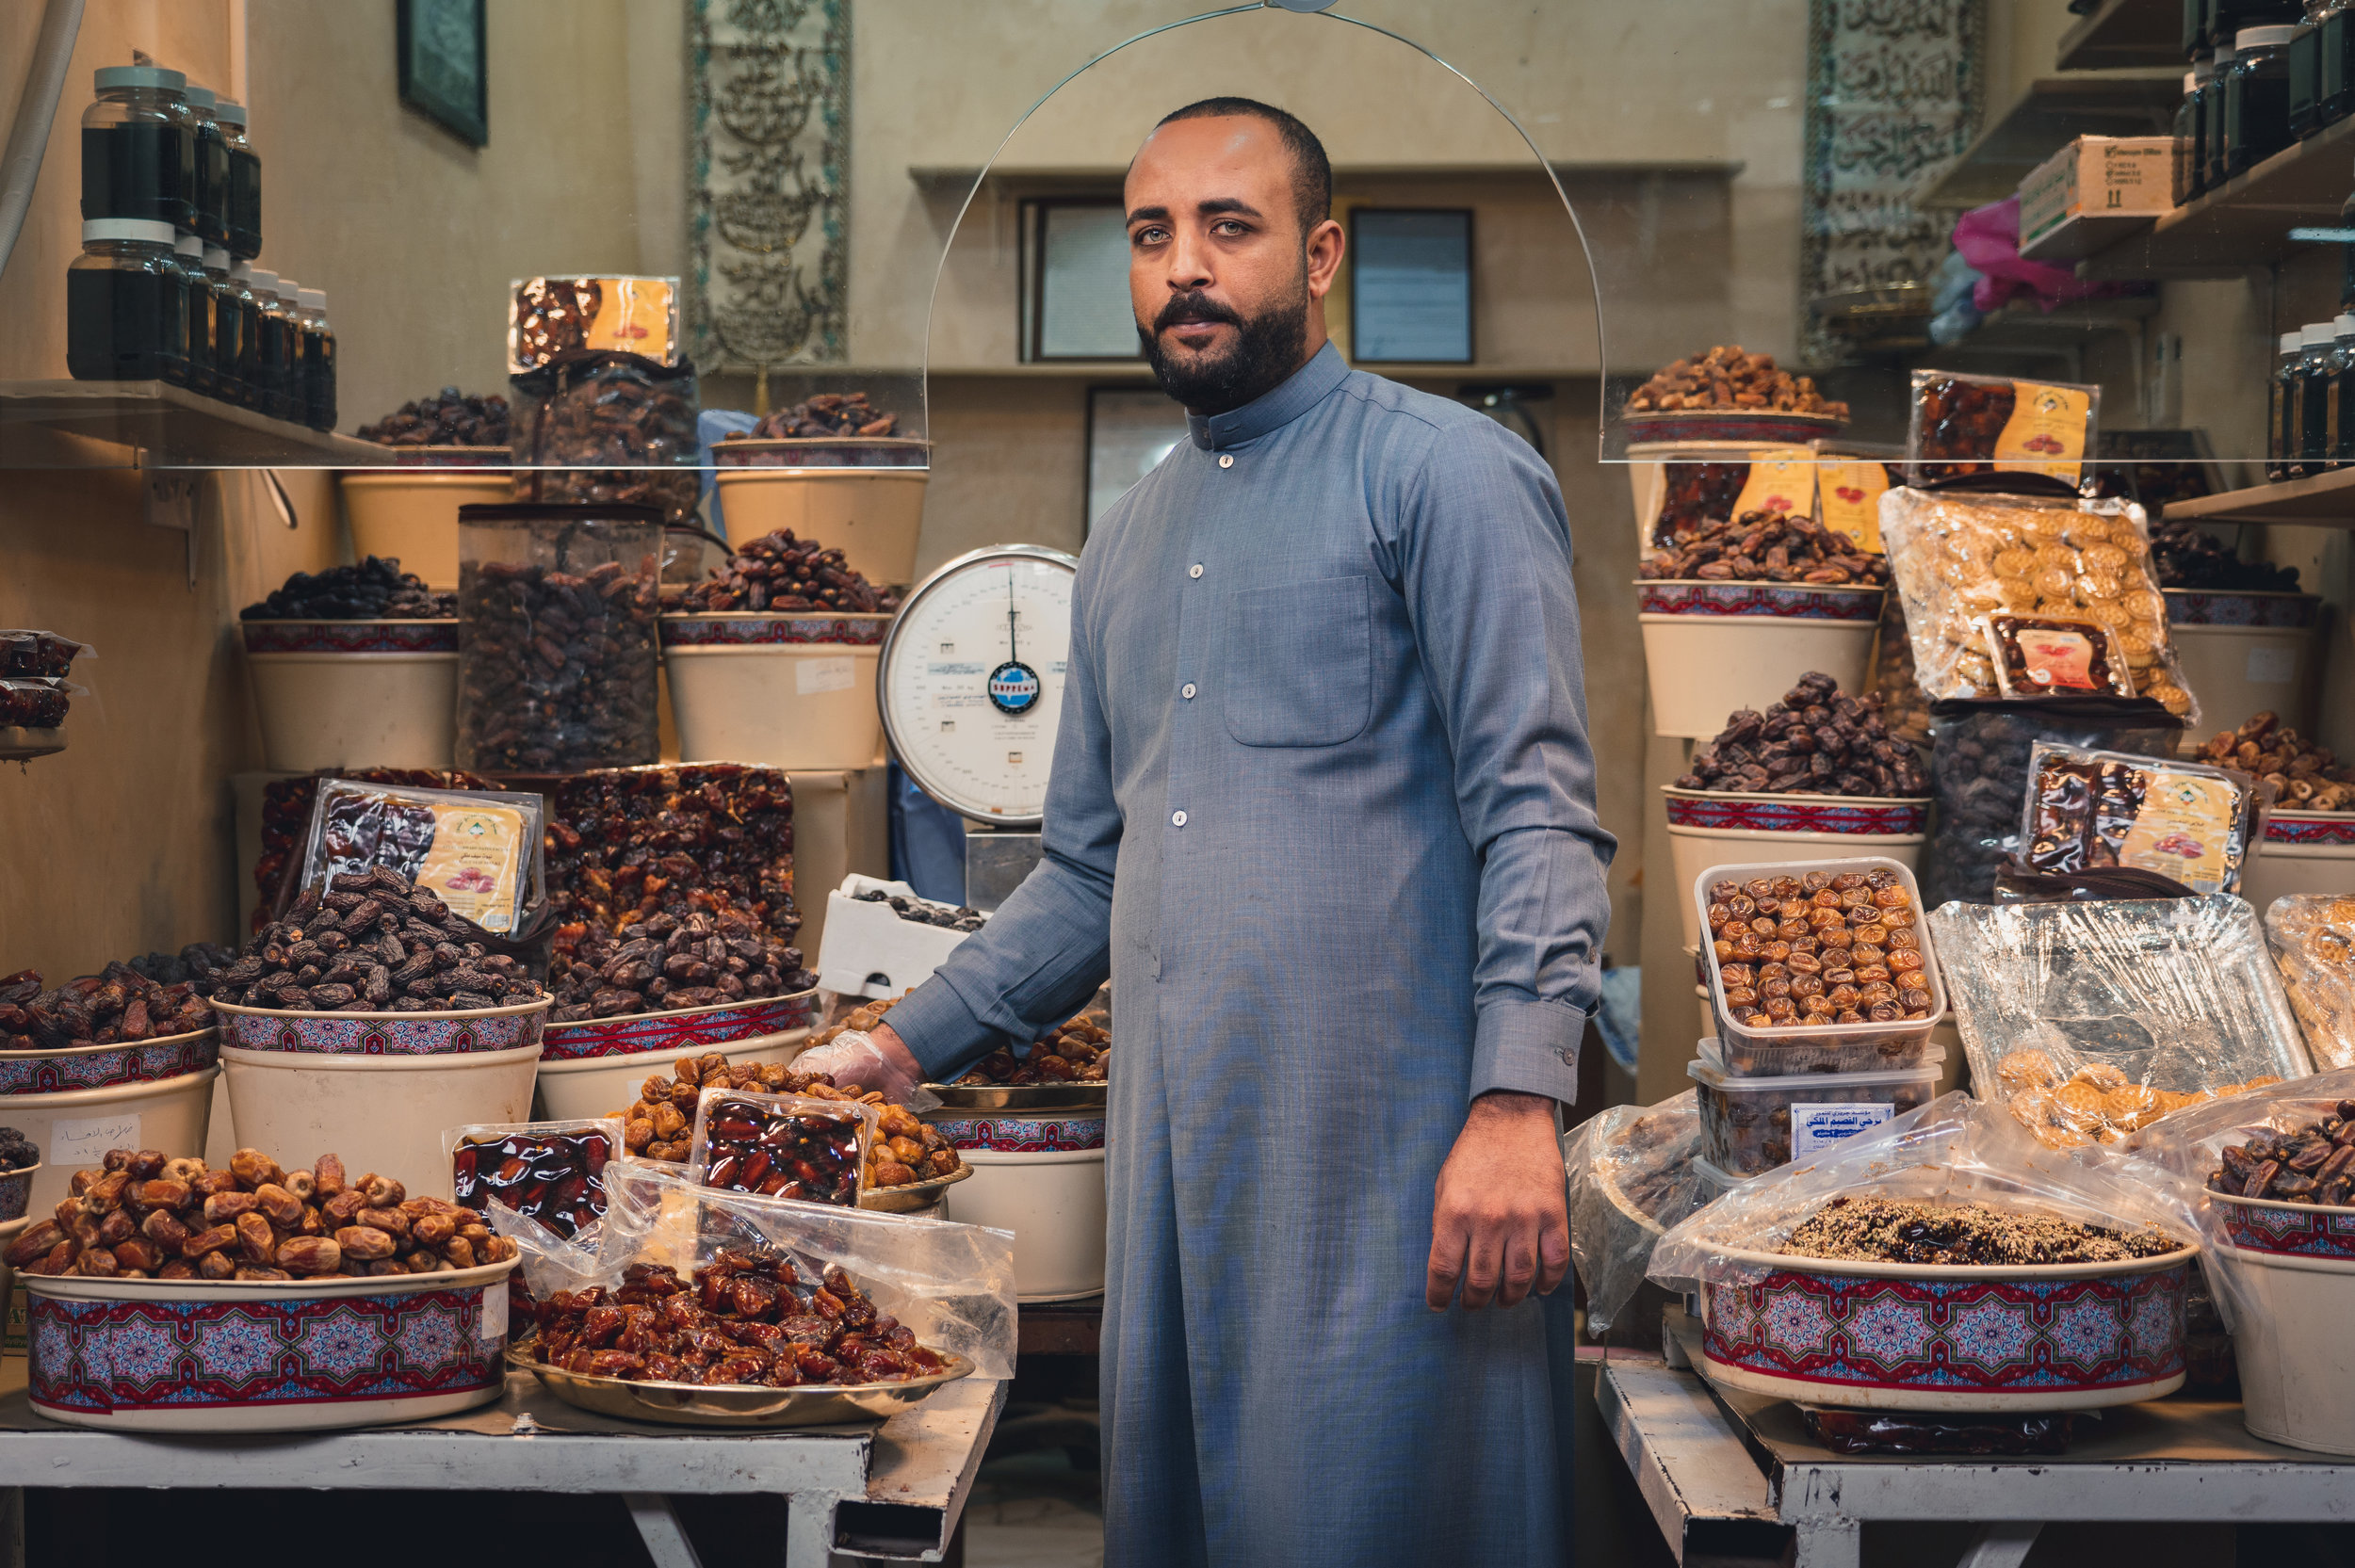 I took this photo in Kuwait City at the Souq Al-Mubarakiya, a local market that has been around for at least 200 years in Kuwait. There one can buy all kinds of locally grown or prepared foods, perfumes, clothing, and jewelry. This mans shop was all about dates, which are grown throughout the Middle East and are a main ingredient in many of the desserts. I was walking around the souq with my fellow crewmember, also a photographer, and as we passed by this man, he insisted on us trying all of the different types of dates he had available.